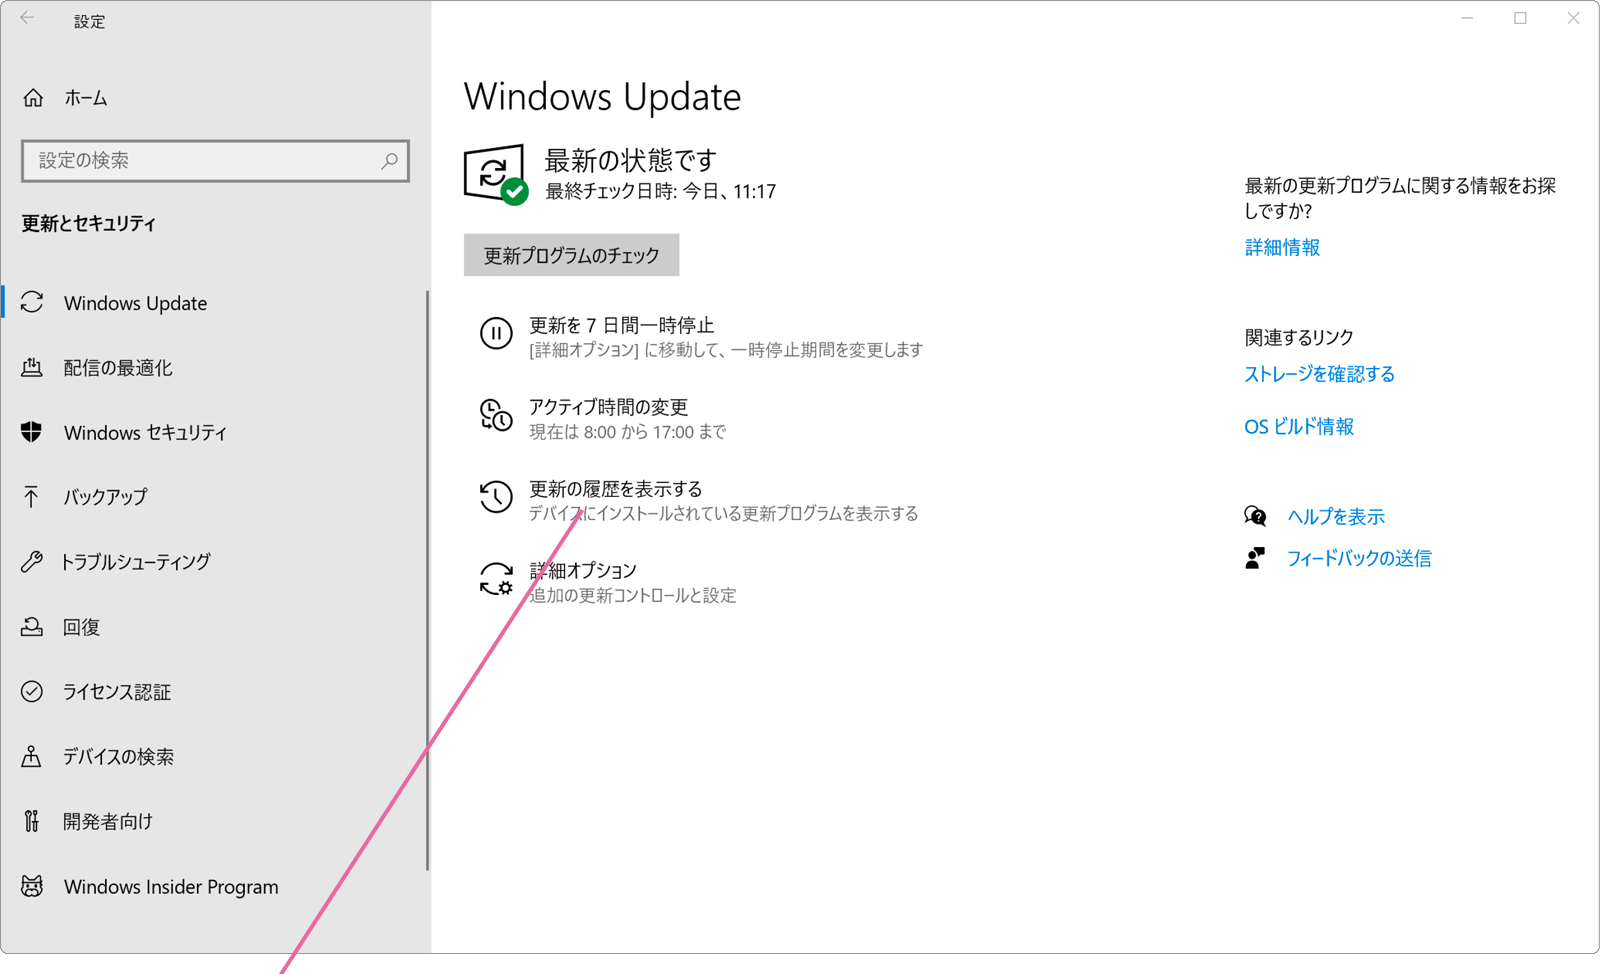 WindowsUpdate画面